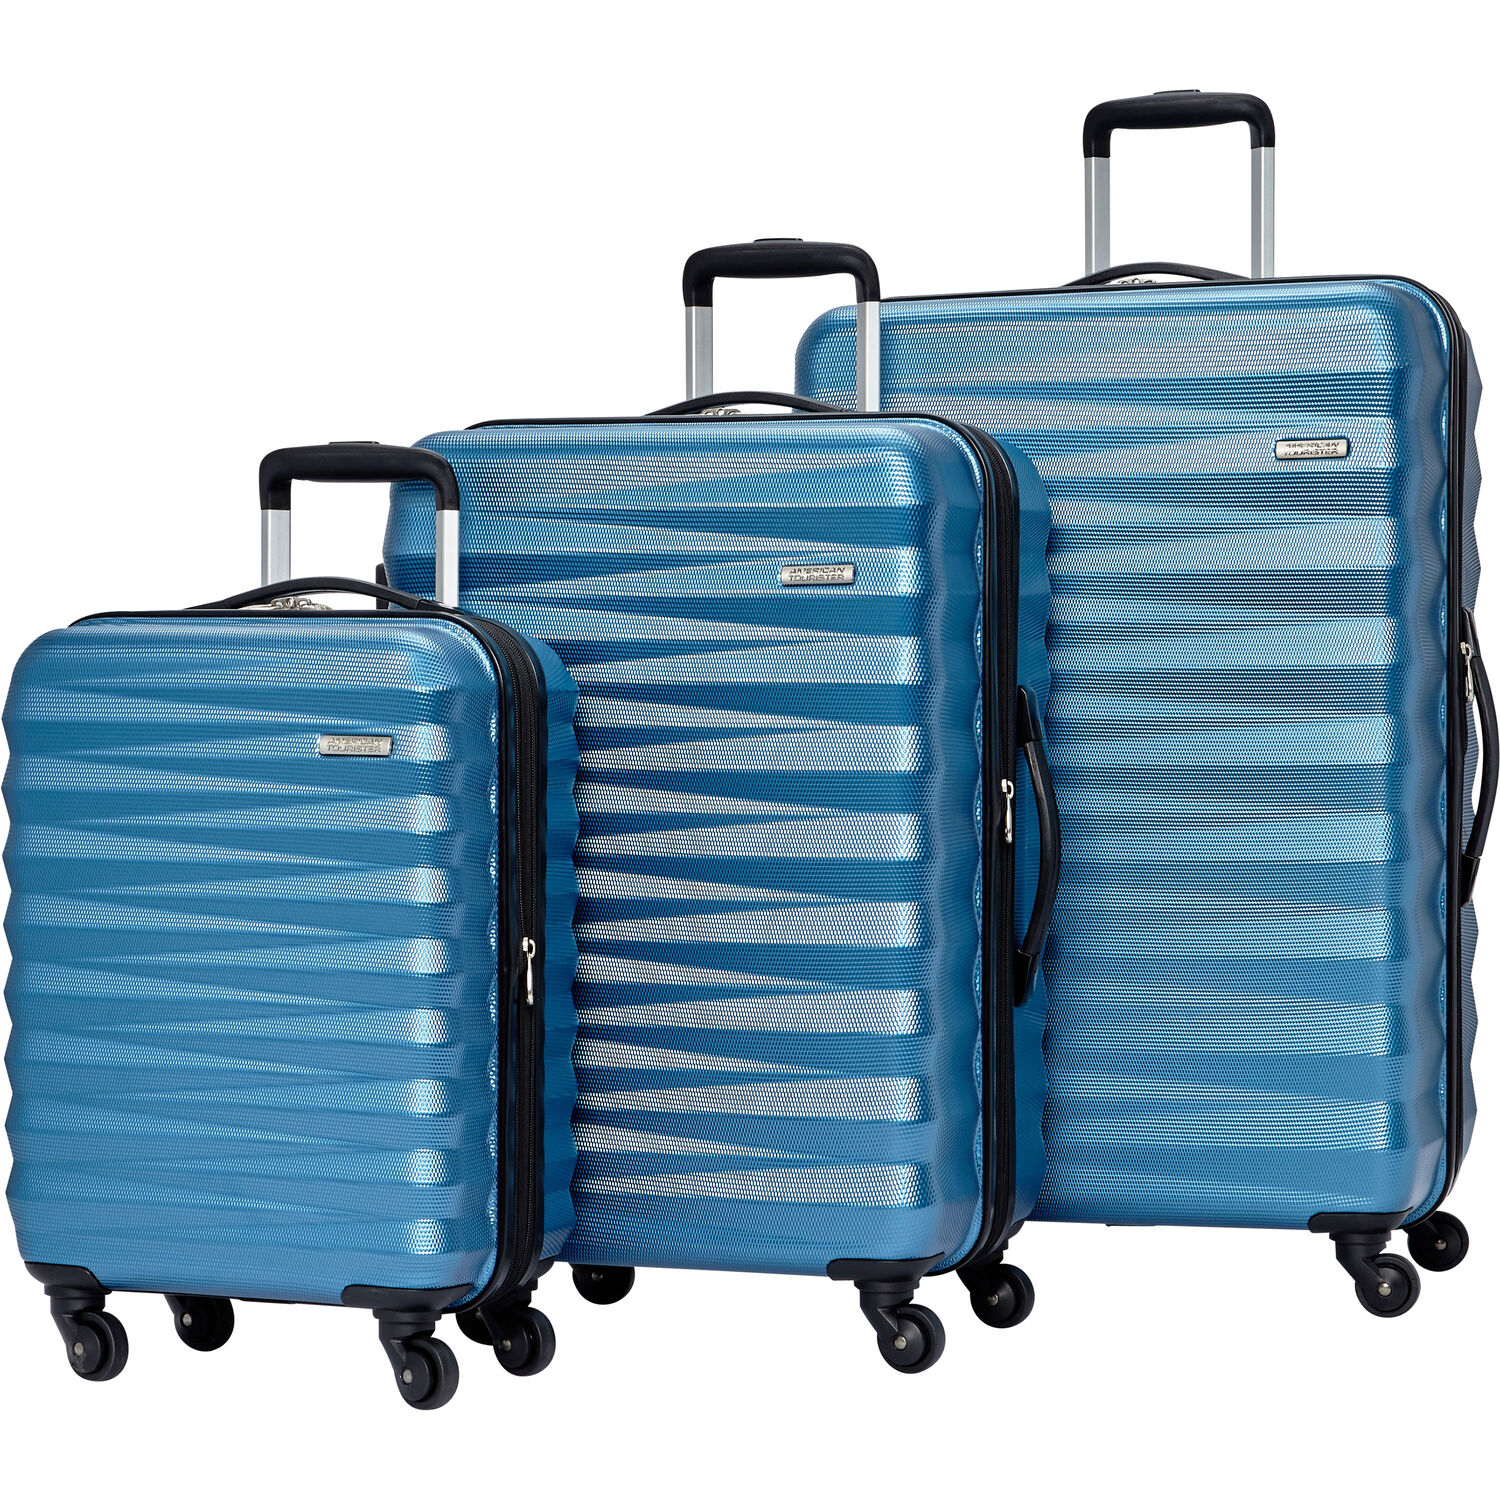 American Tourister Triumph NX 3 Piece Set in the color Periwinkle.